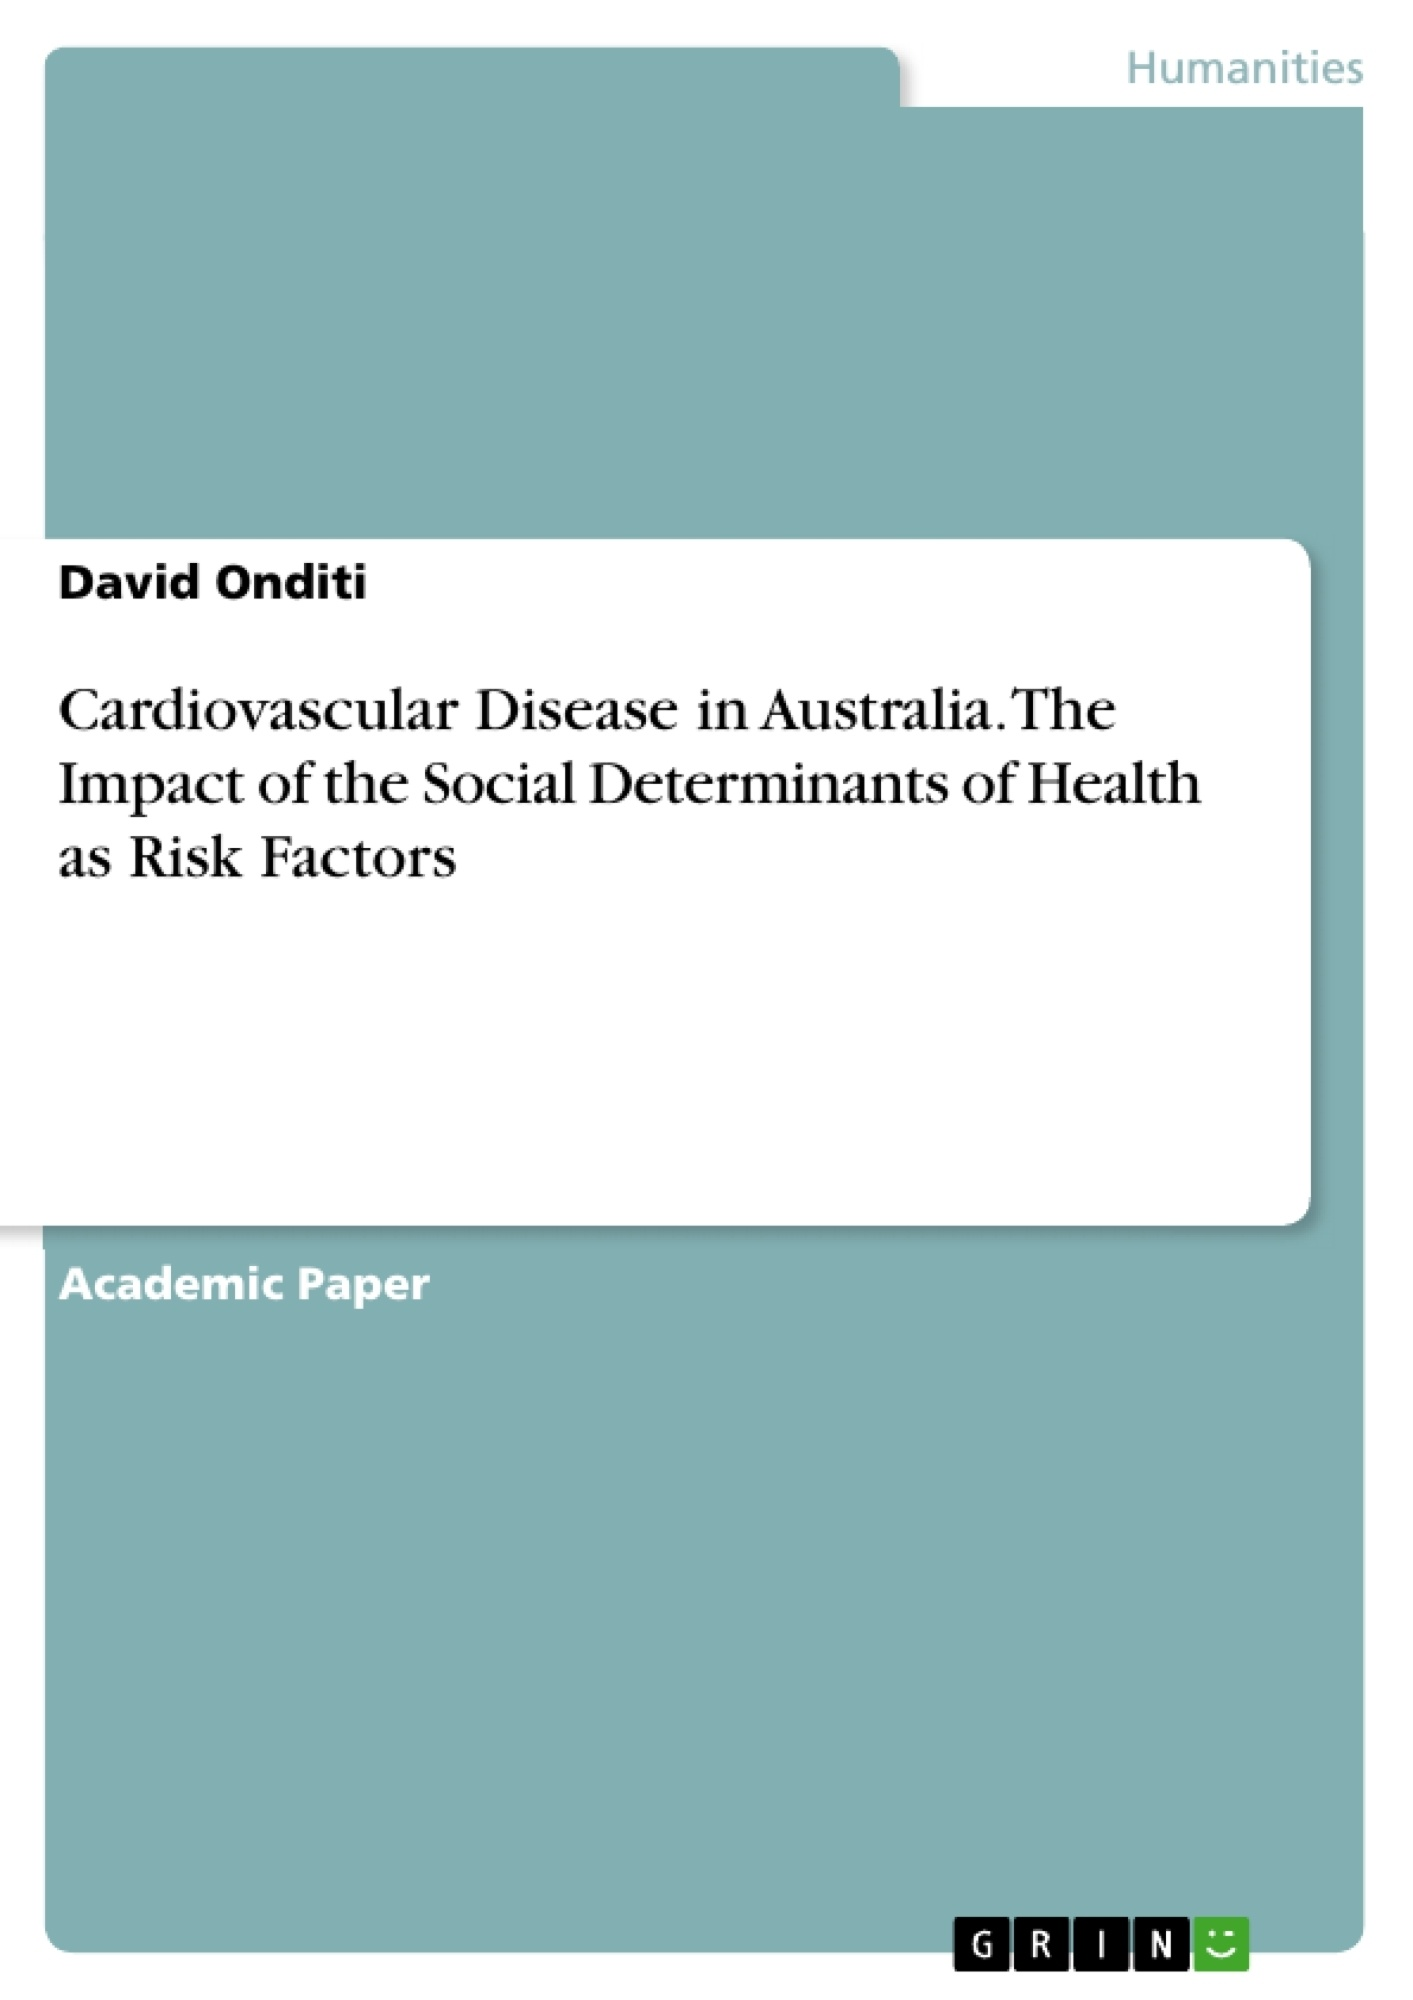 Title: Cardiovascular Disease in Australia. The Impact of the Social Determinants of Health as Risk Factors